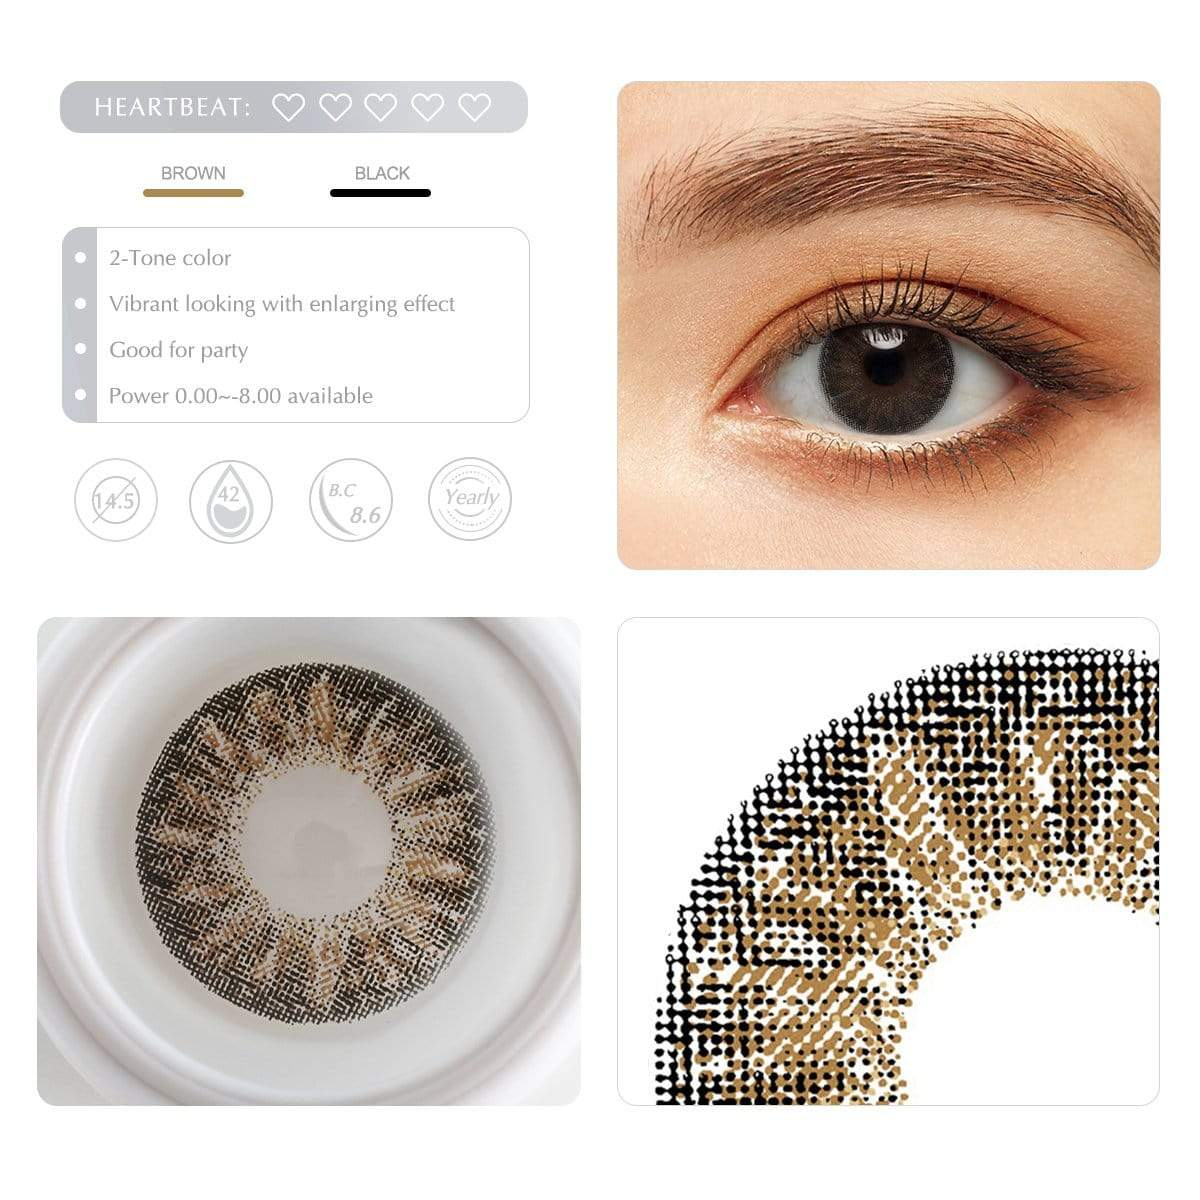 Diamond brown contact lens details display rederings